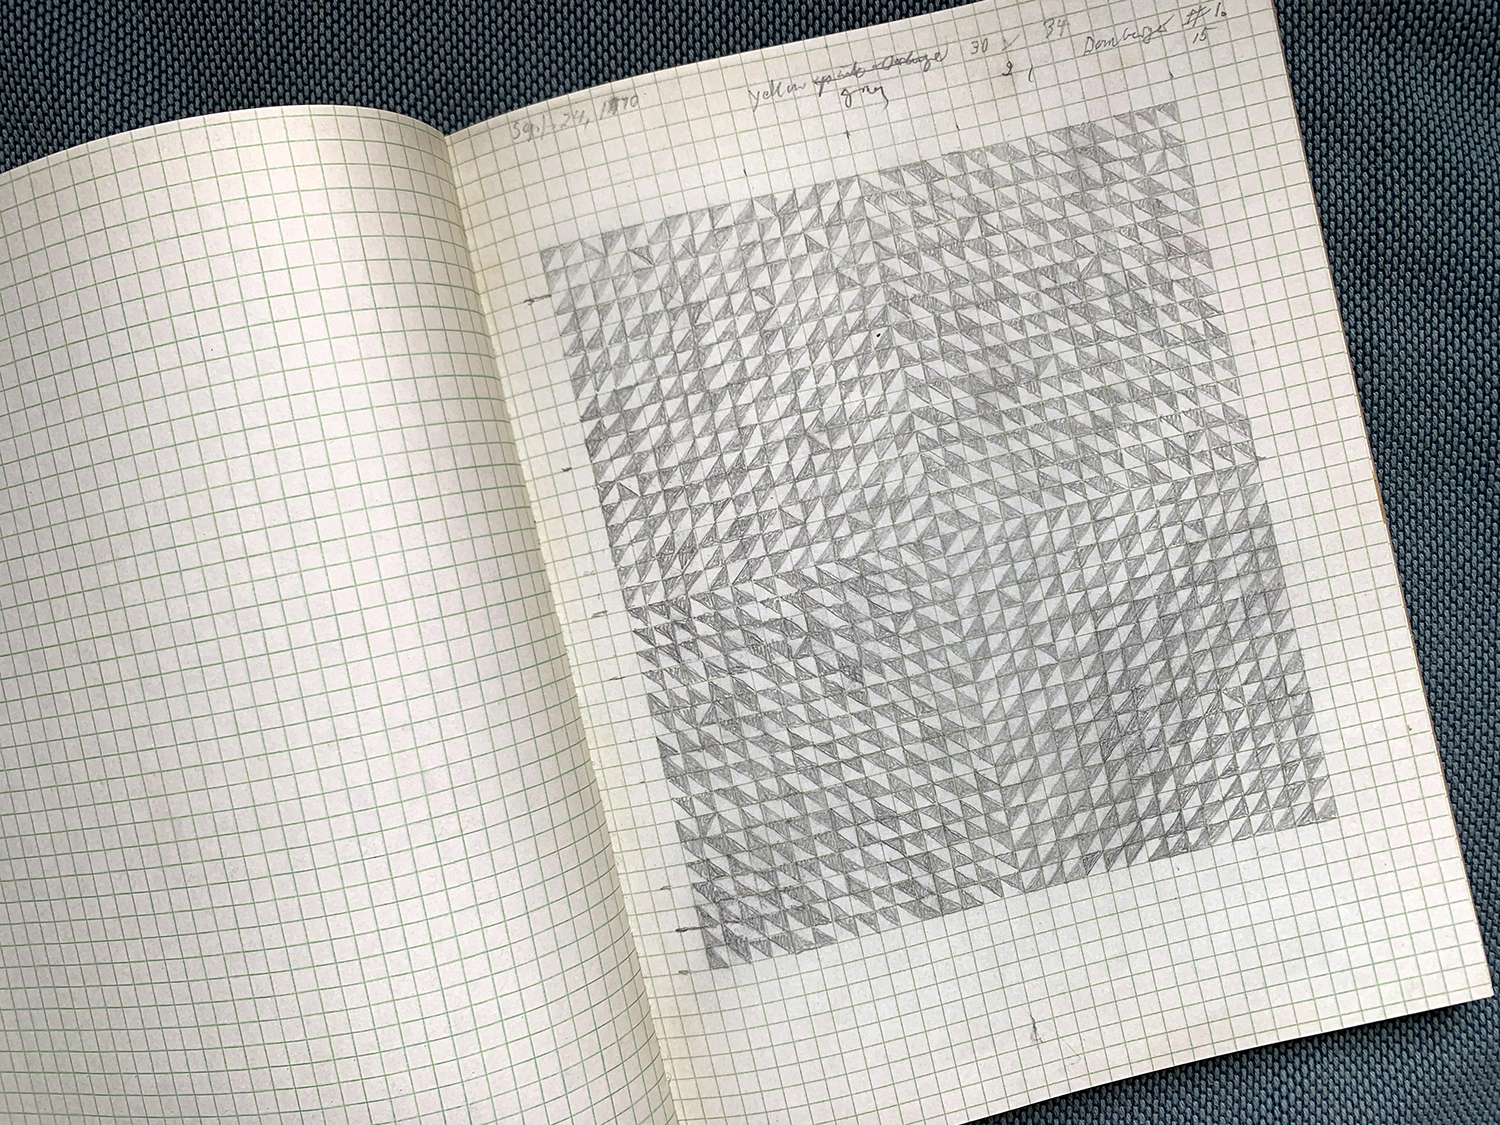 Original drawing by Anni Albers. Published in Anni Albers Notebook 1970 - 1980. David Zwirner Books.